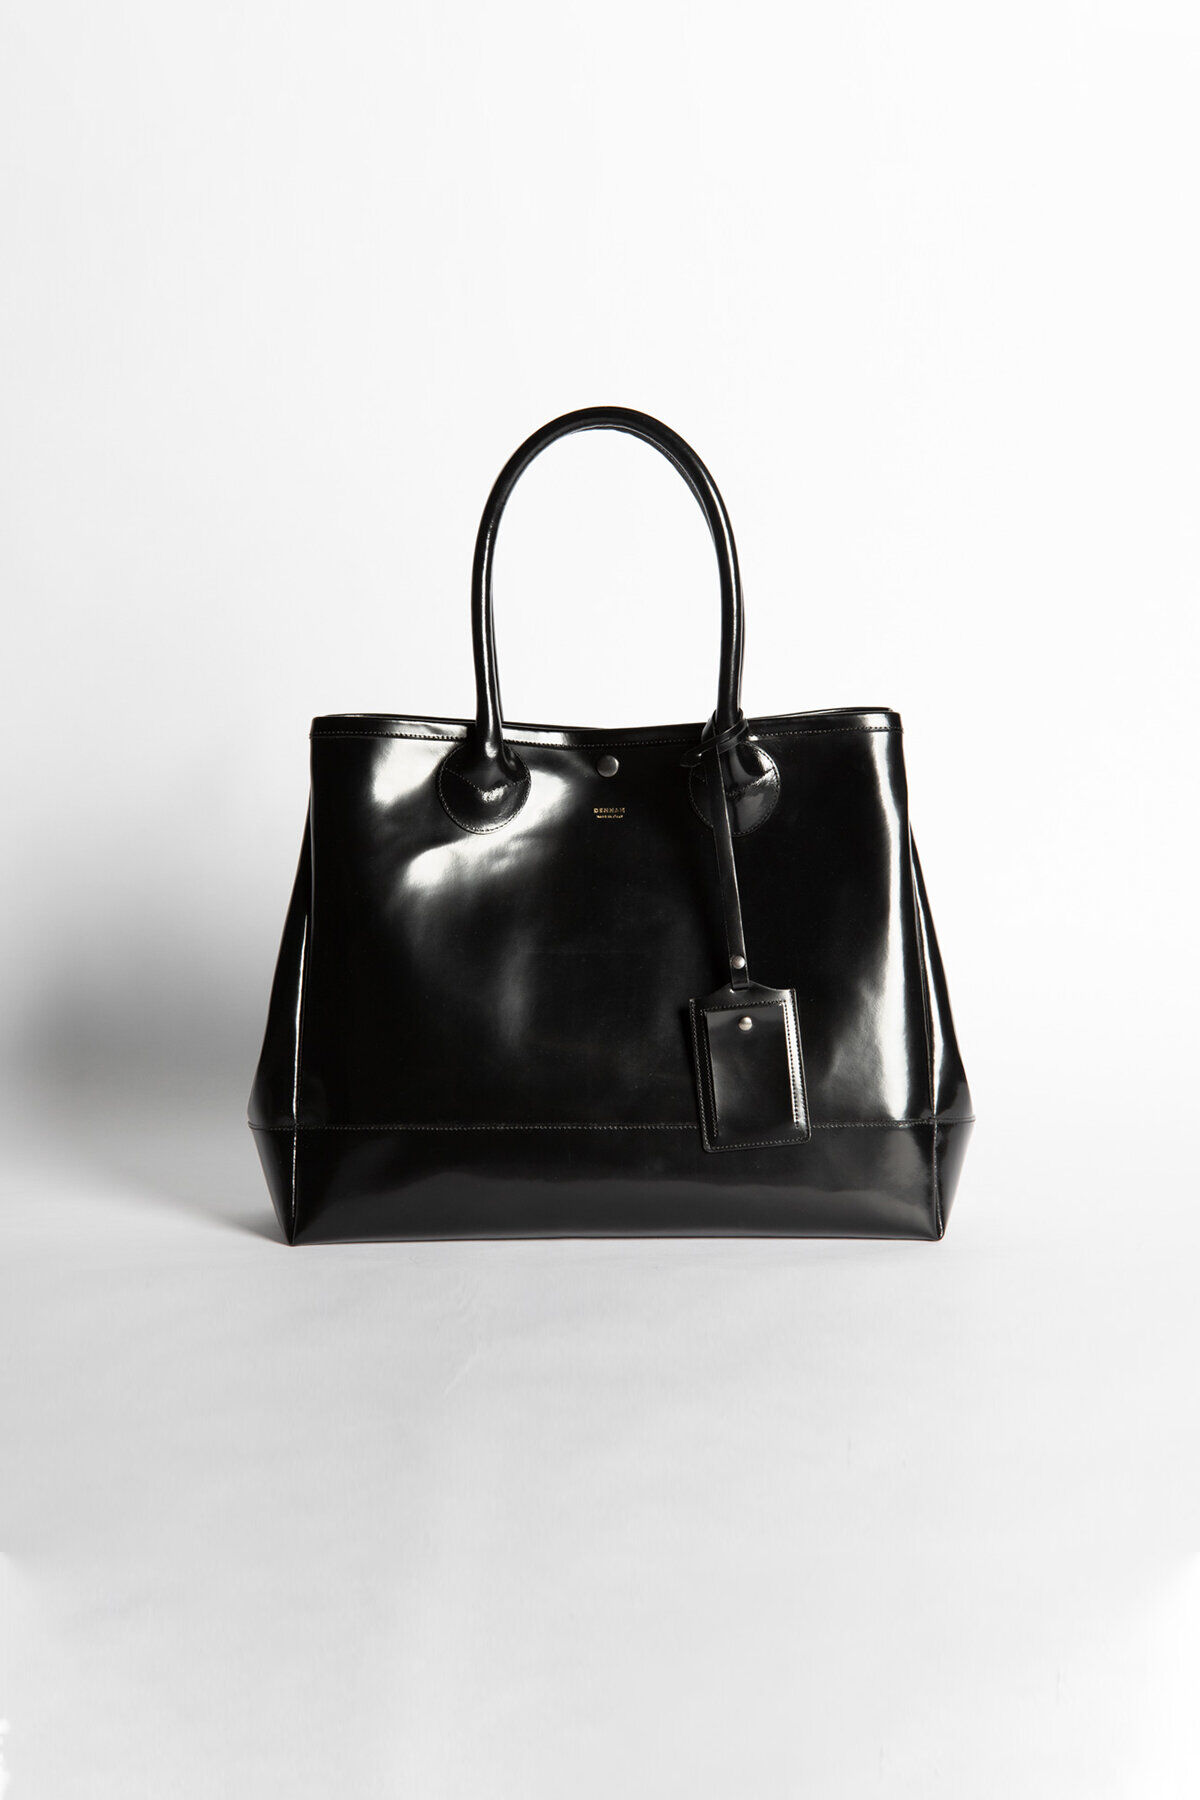 LARGE TOTE BAG Black Patent Leather